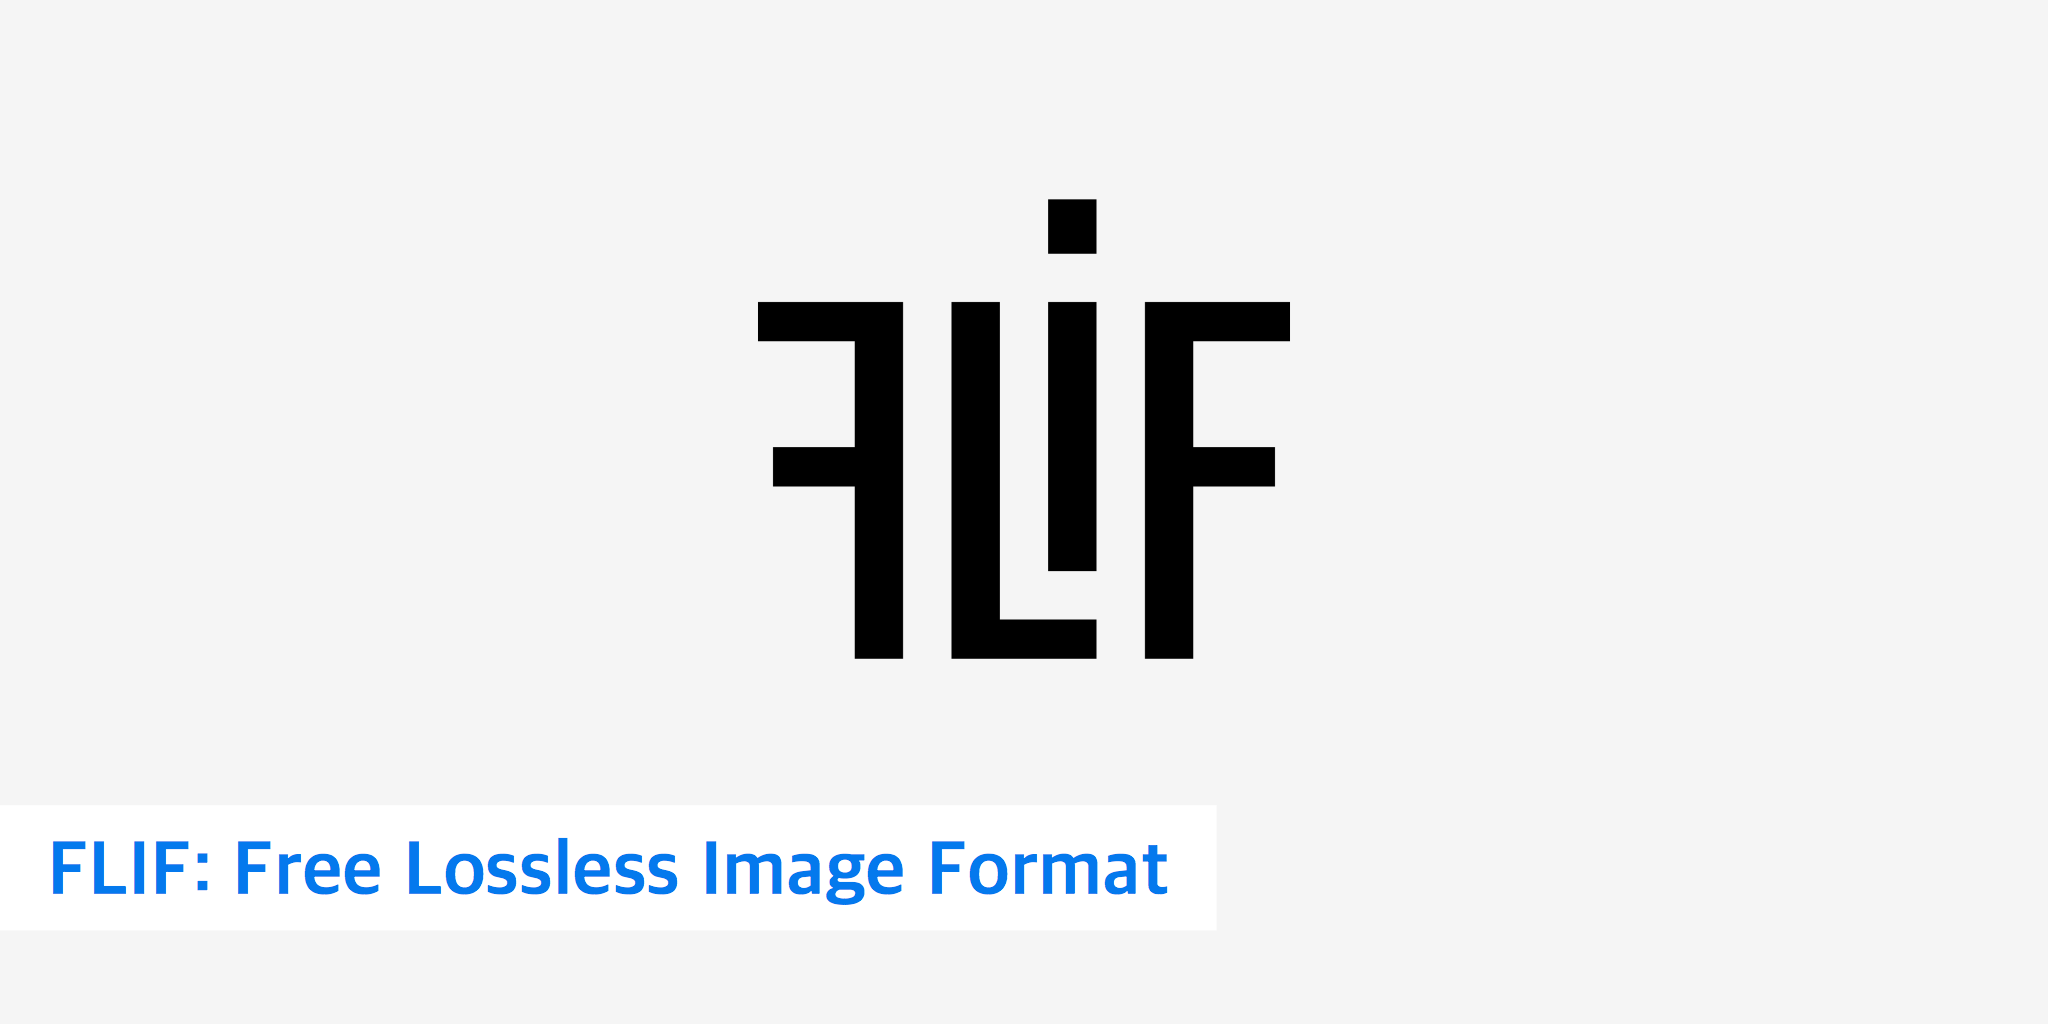 What You Need to Know About FLIF: Free Lossless Image Format